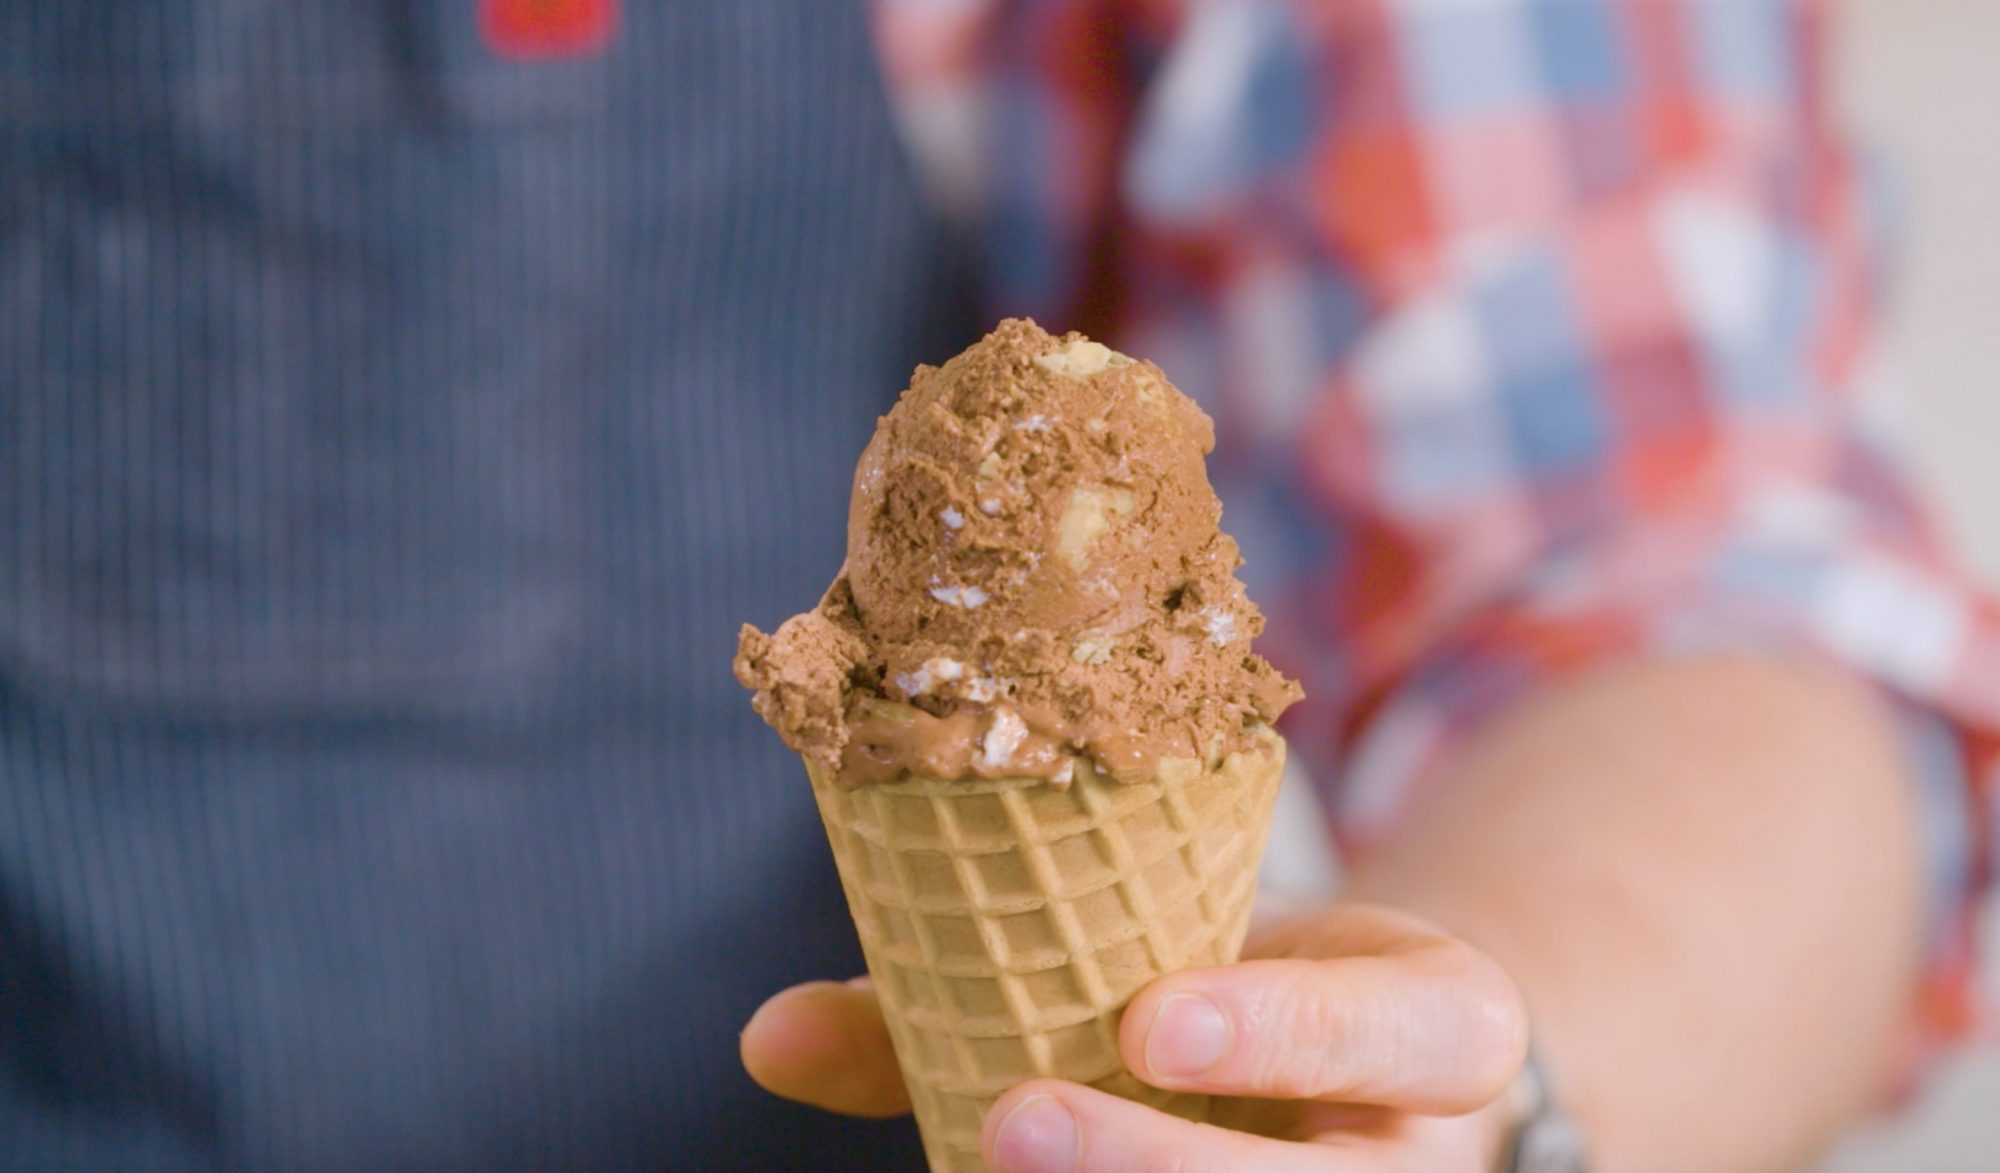 How to Make Rocky Road Ice Cream Without an Ice Cream Maker